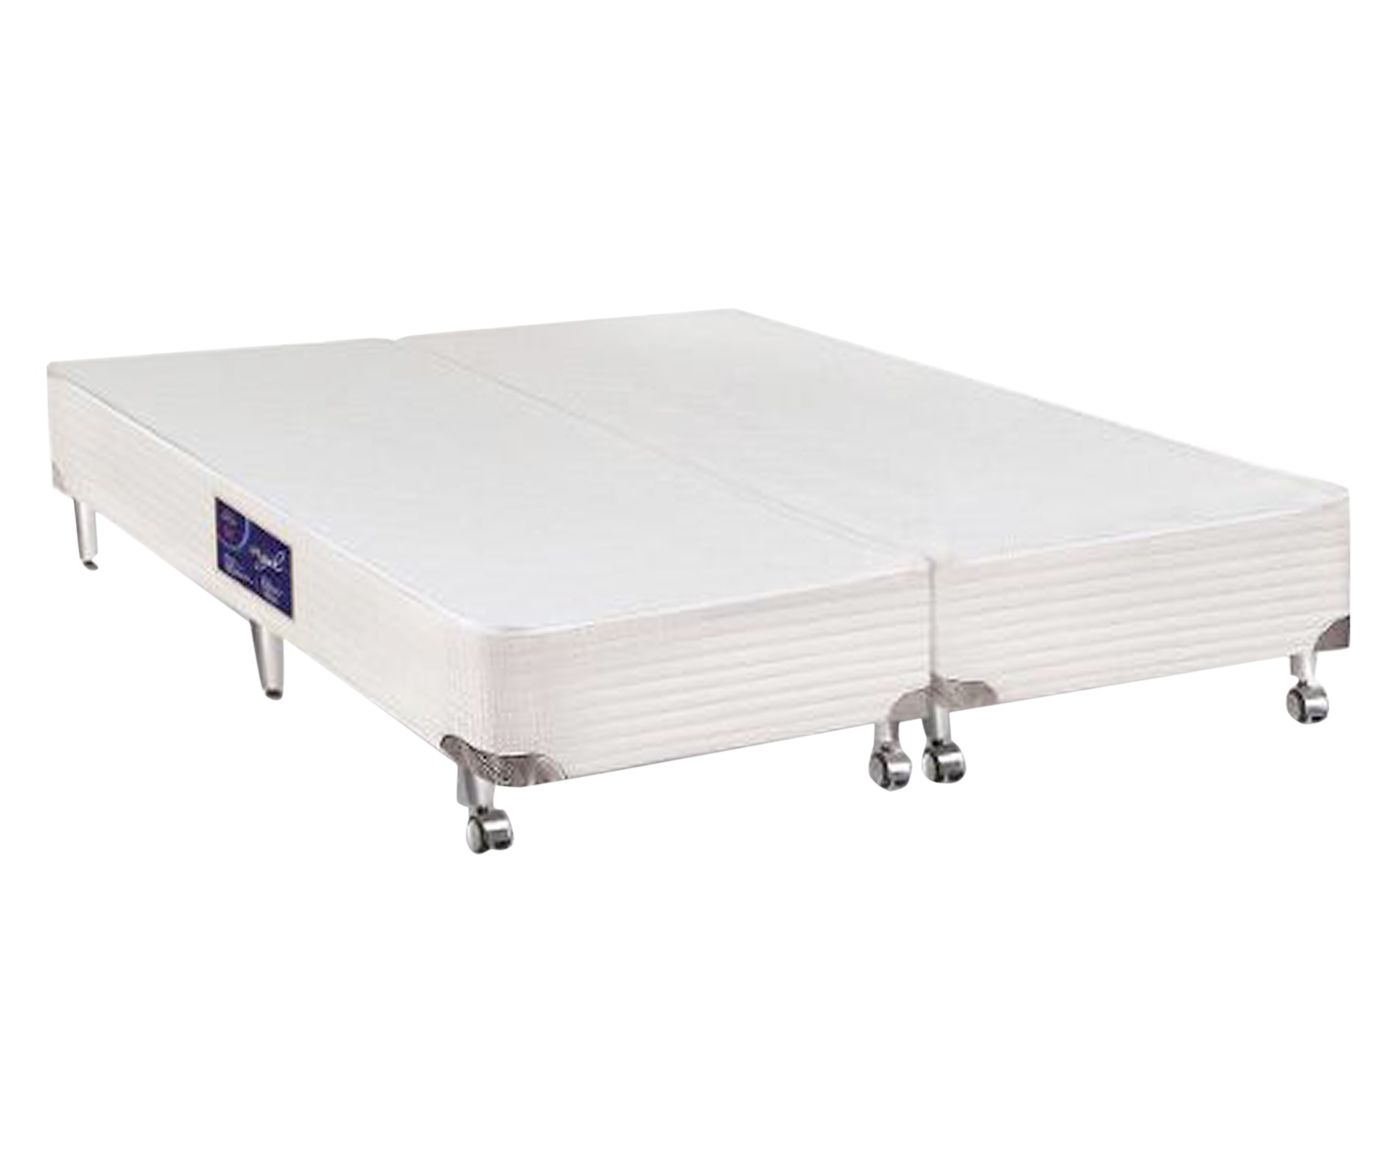 Cama Box Simples Gold Star Vitagel Queen Size Westwing Com Br